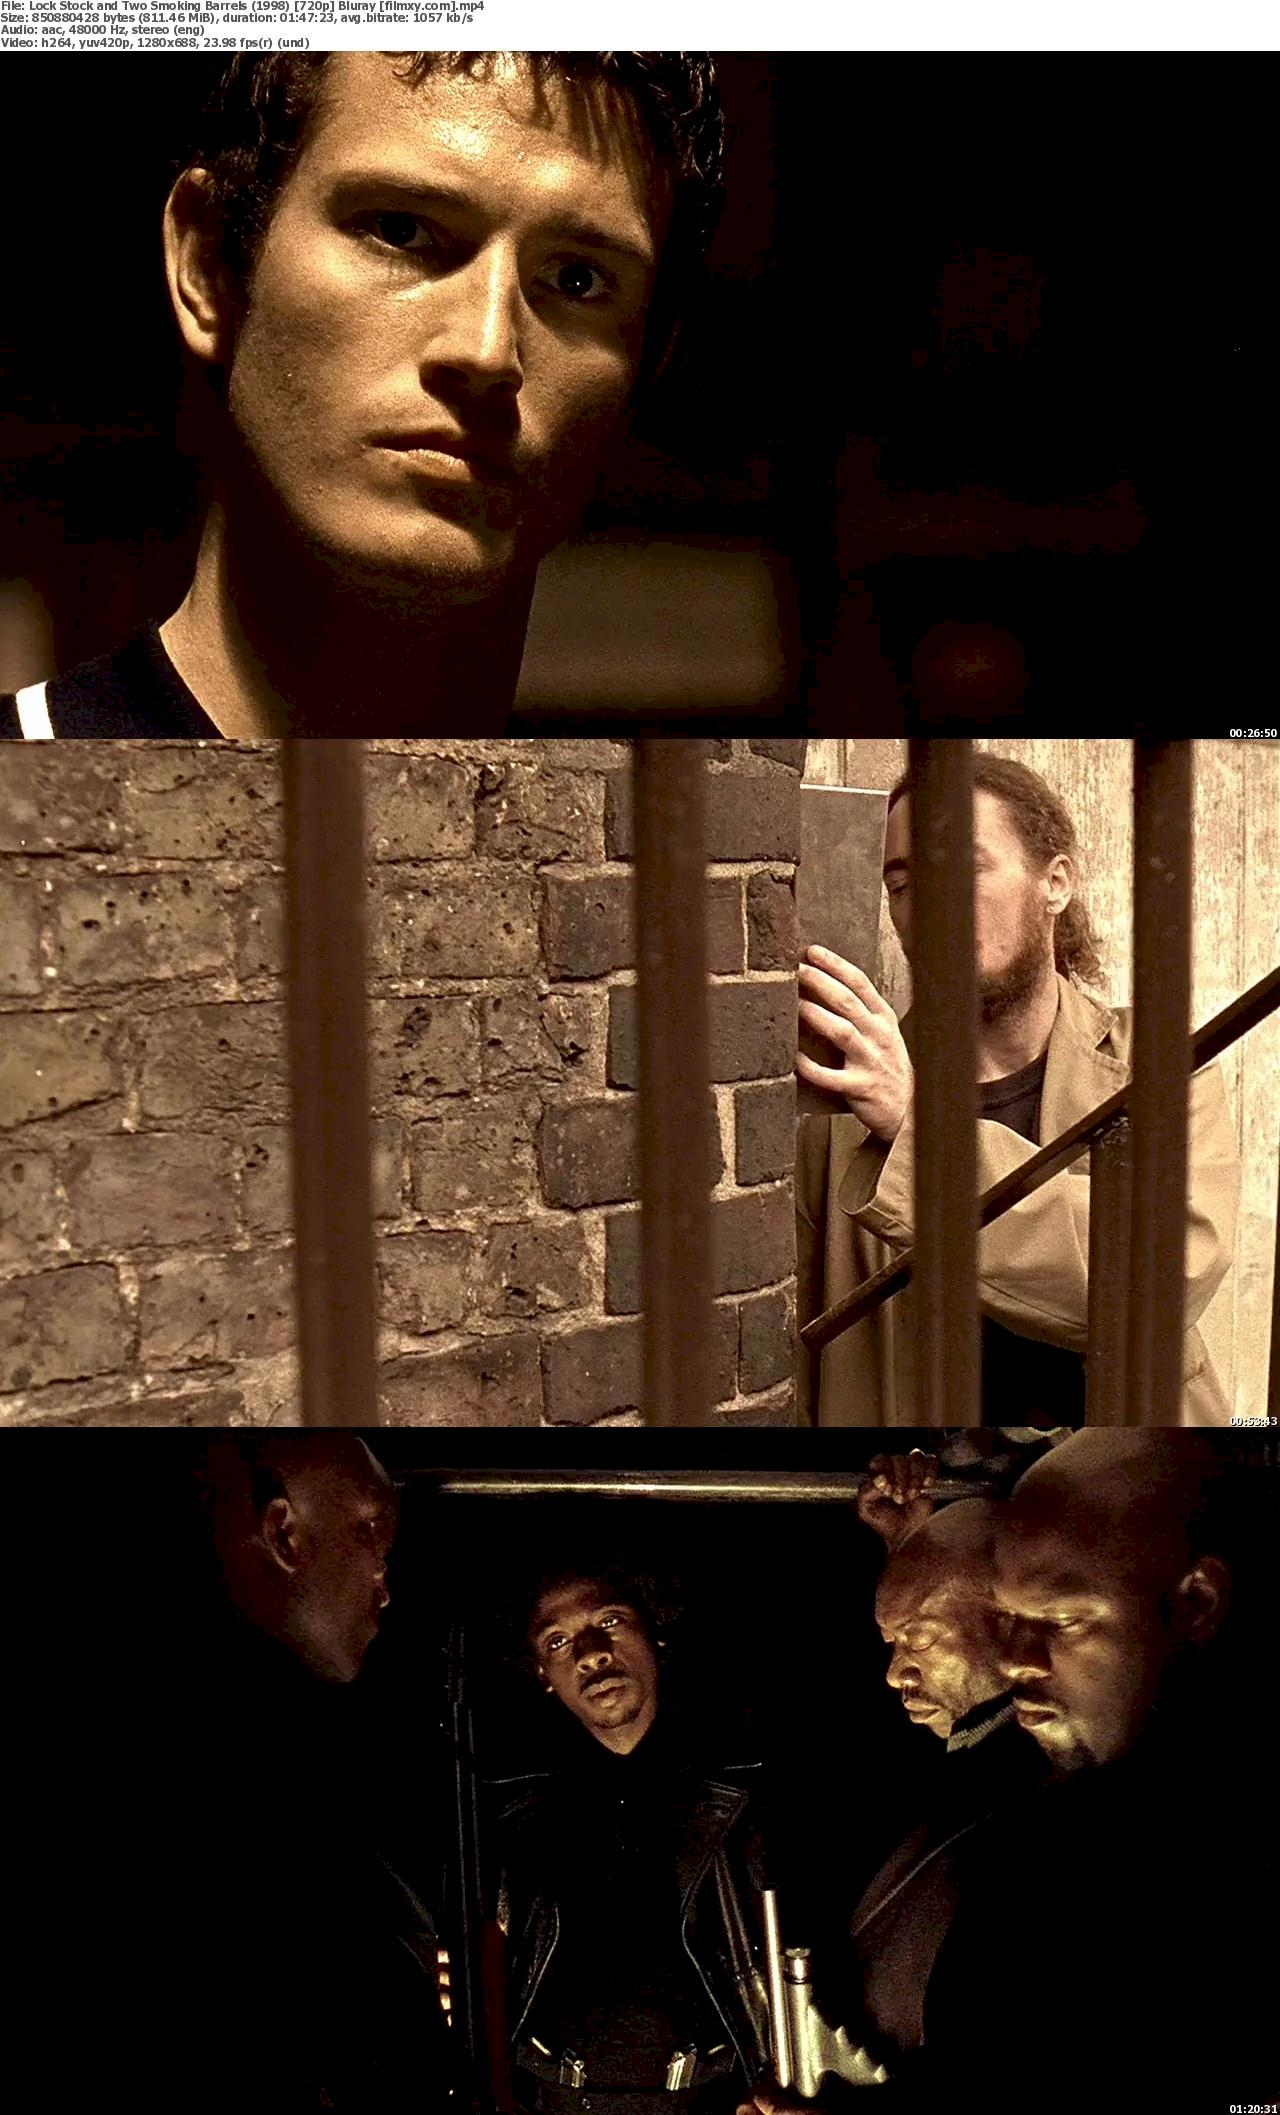 Lock Stock and Two Smoking Barrels (1998) 720p & 1080p Bluray Free Download 720p Screenshot